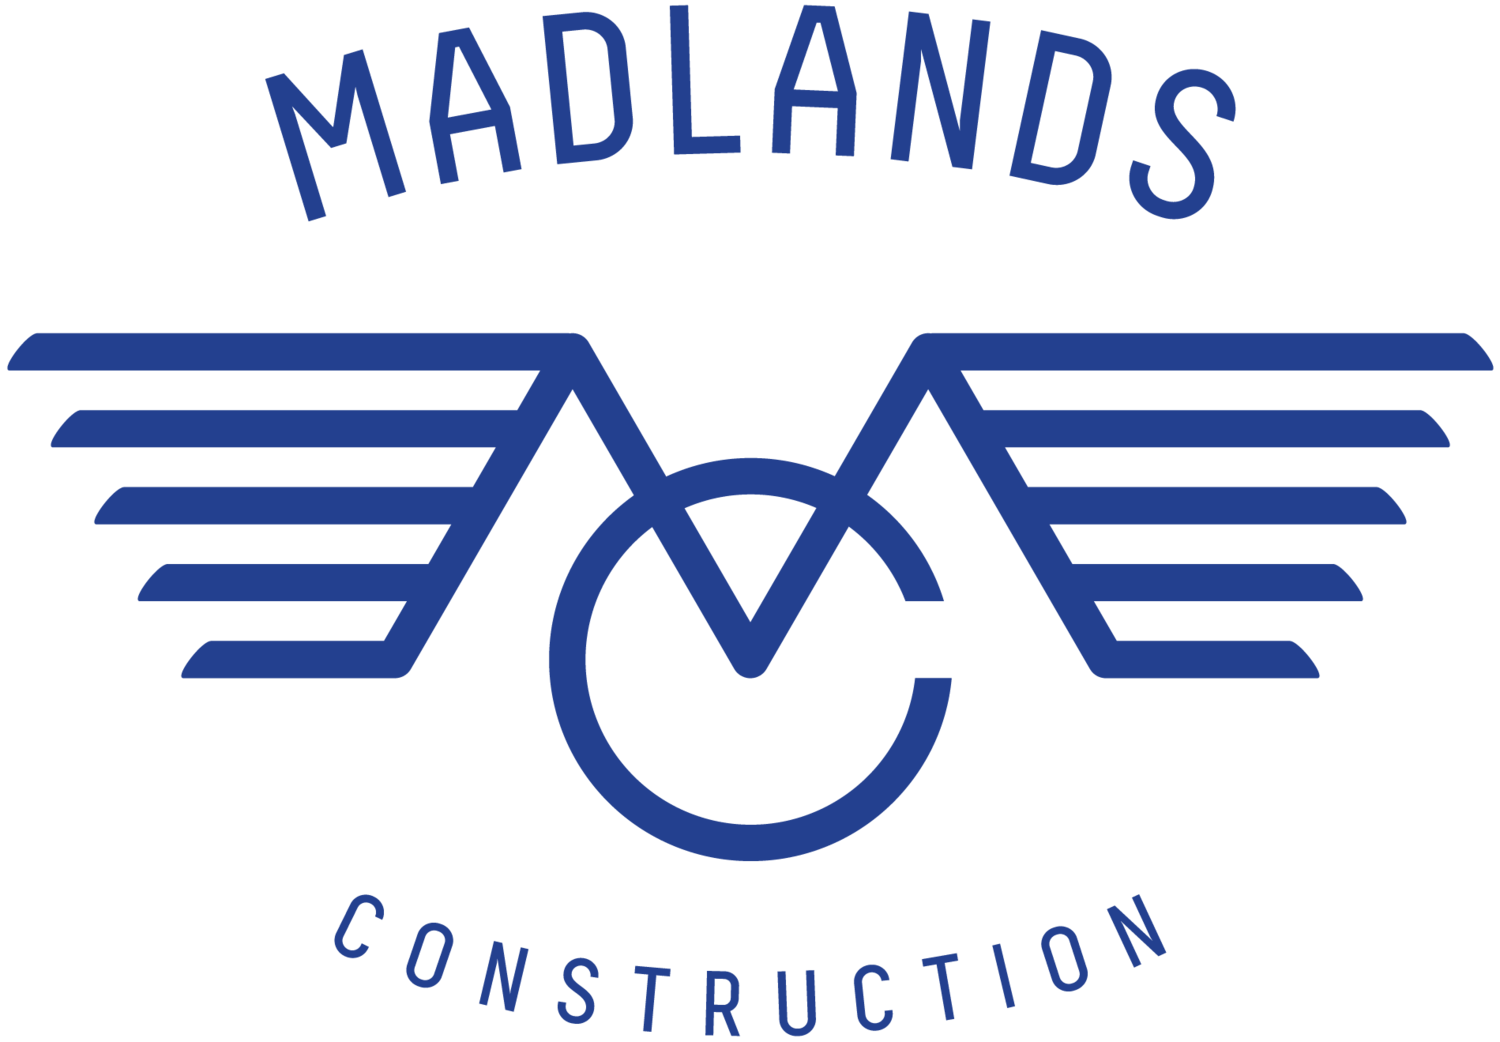 Madlands Construction pty ltd